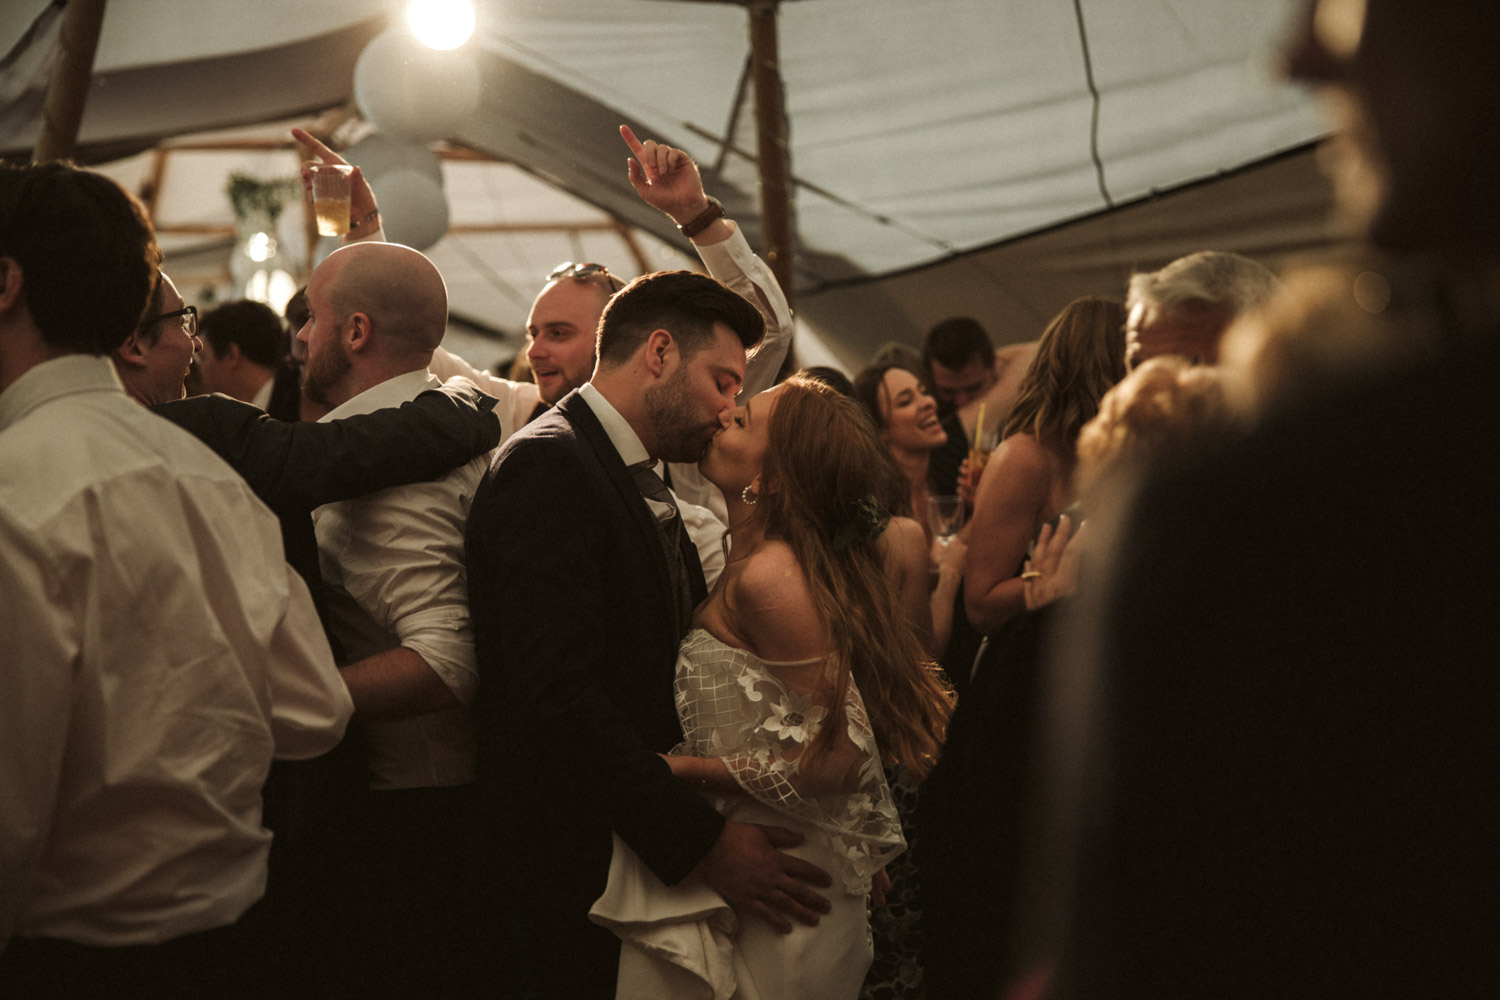 the couple share a moment on the dance floor